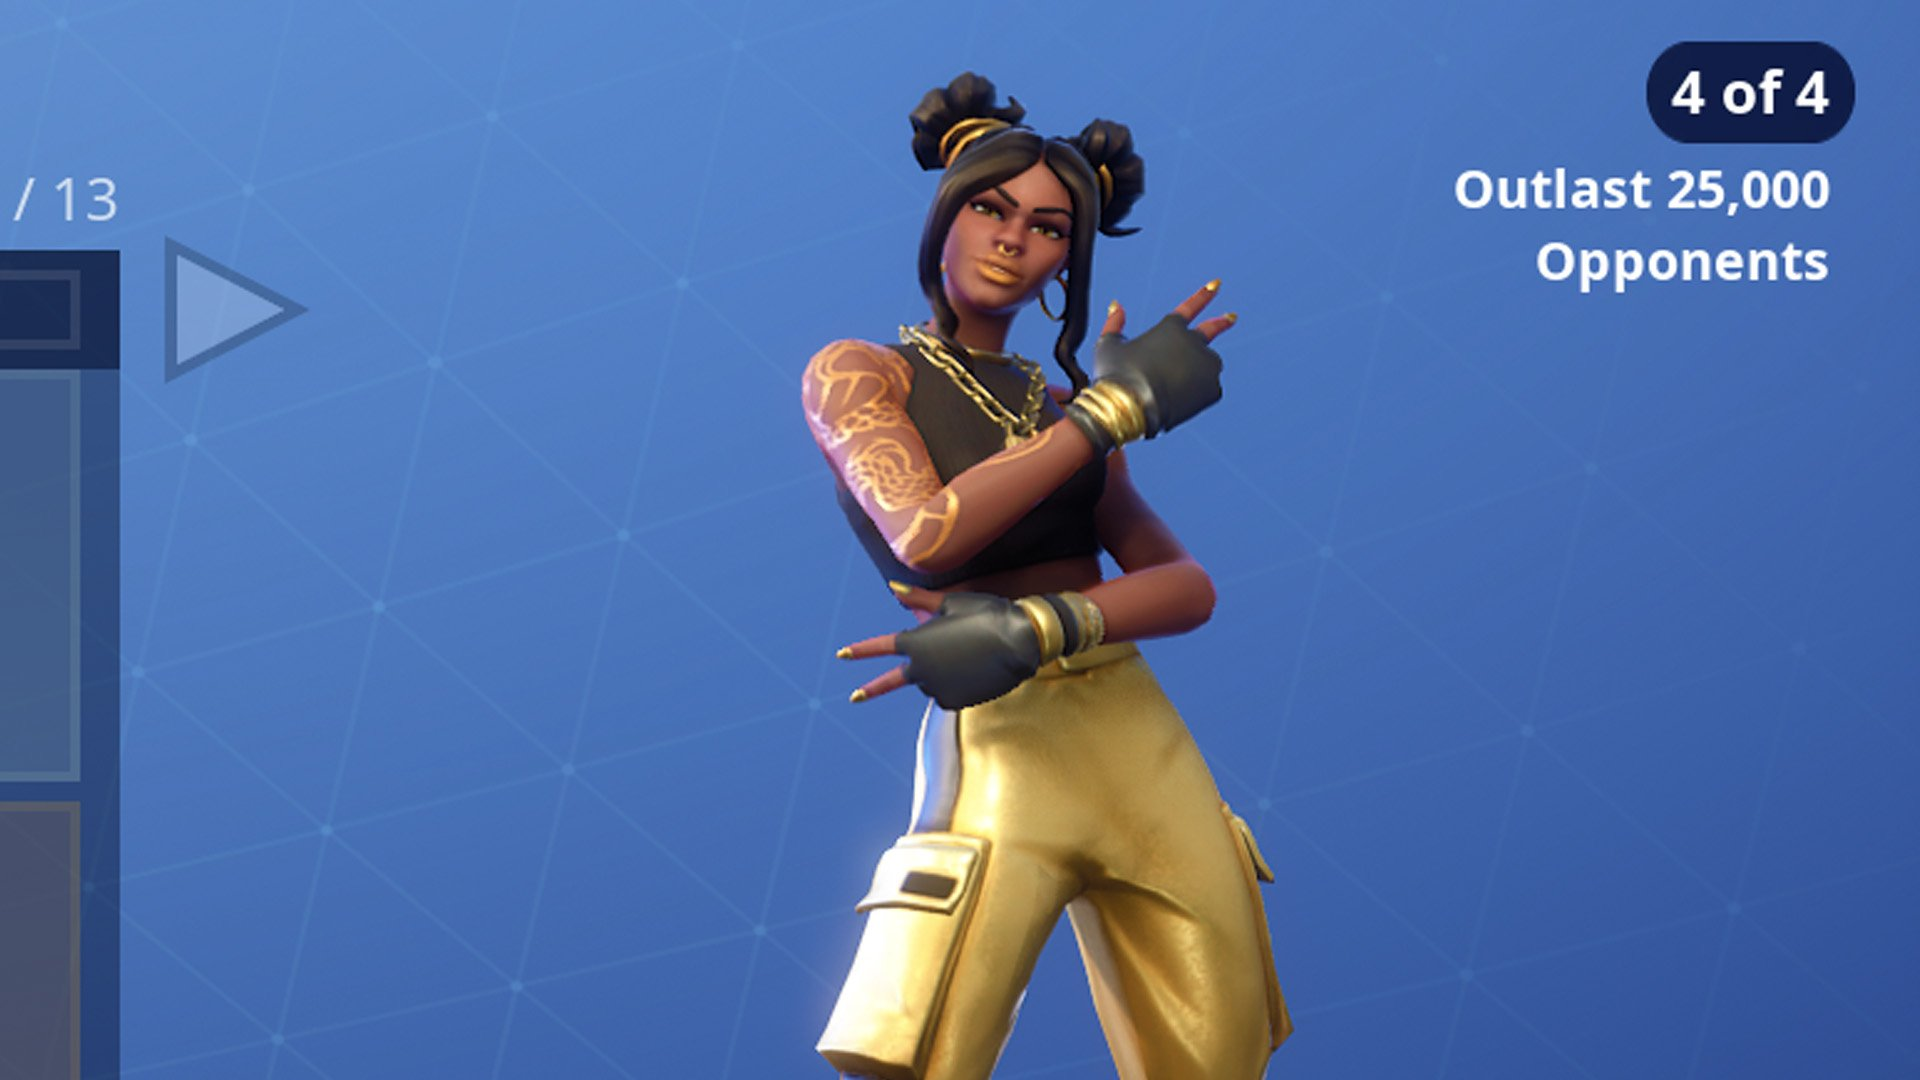 The Fortnite Season 8 Tier 100 skin is Luxe with four unlockable 1920x1080